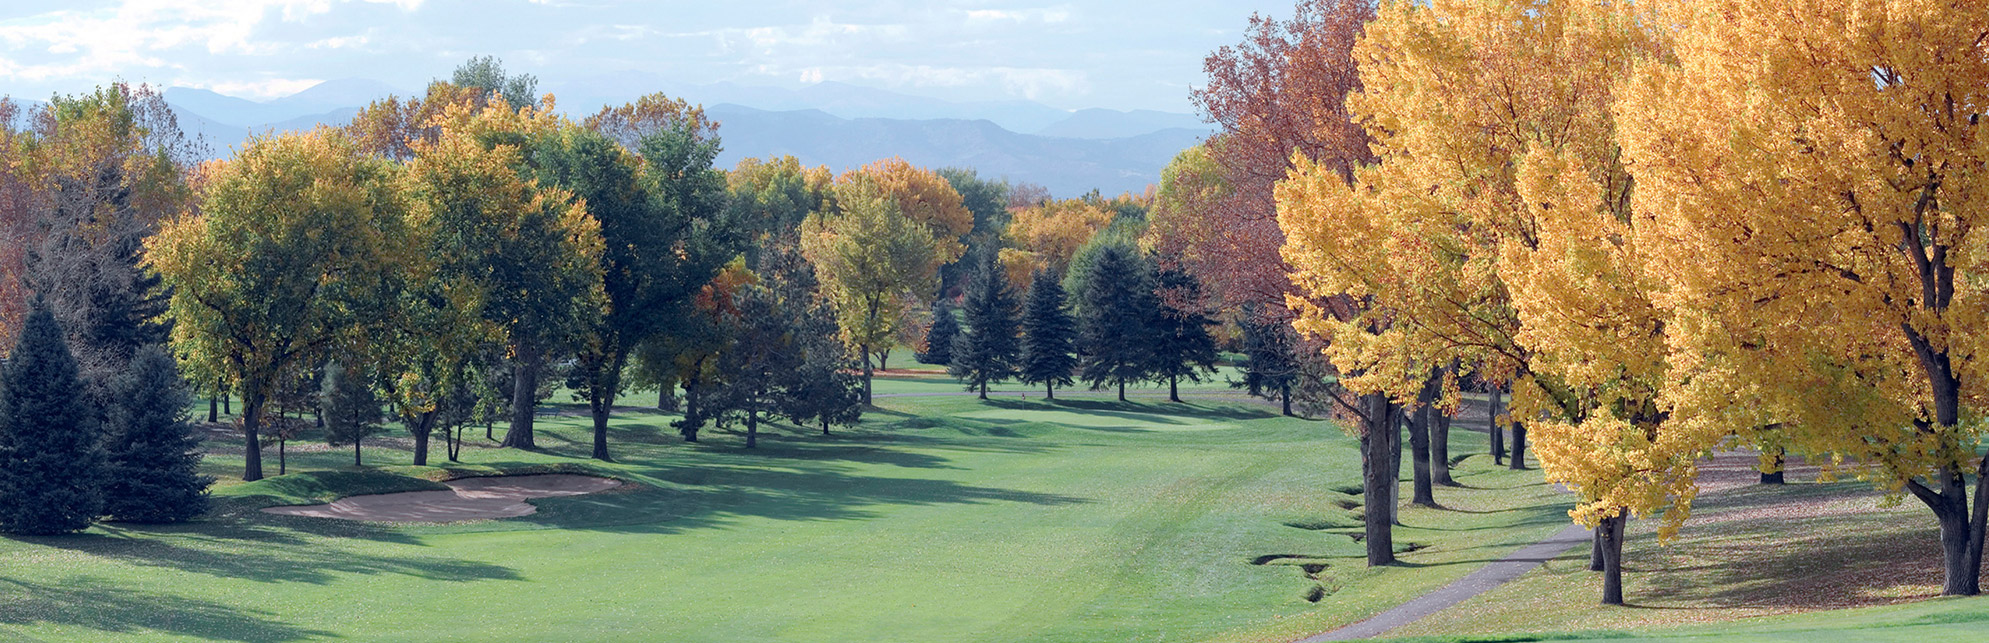 Golf Course Image - Cherry Hills Country Club No. 1